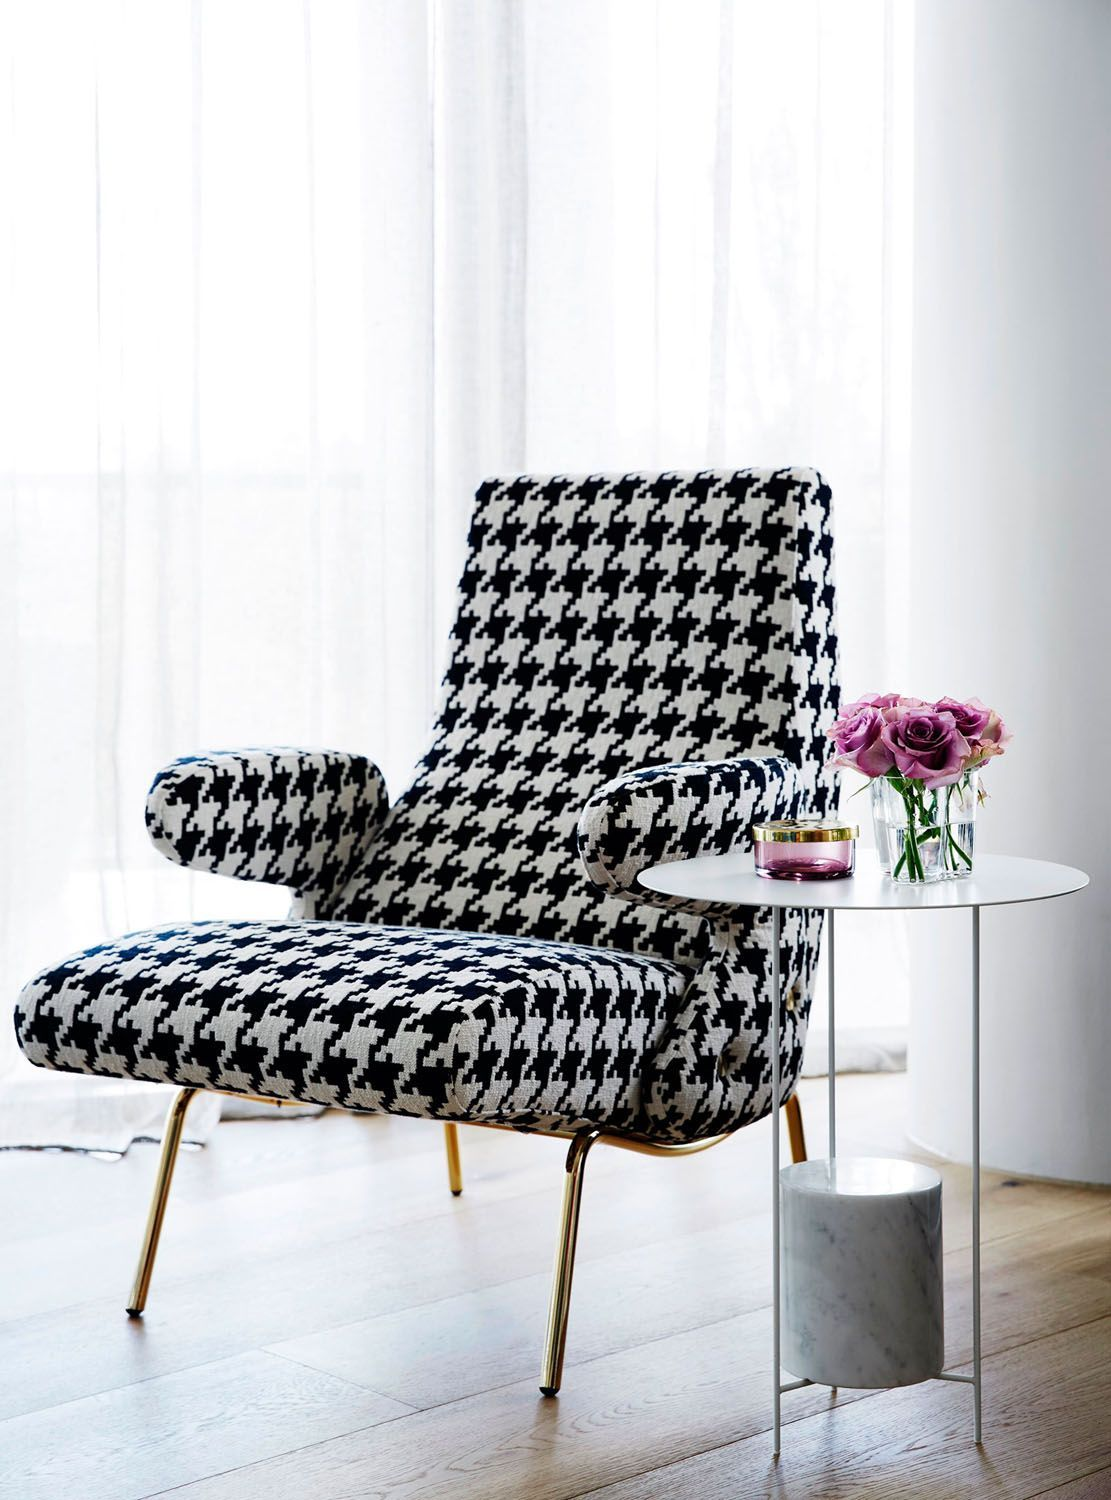 houndstooth chair - Google Search | Furniture design ...